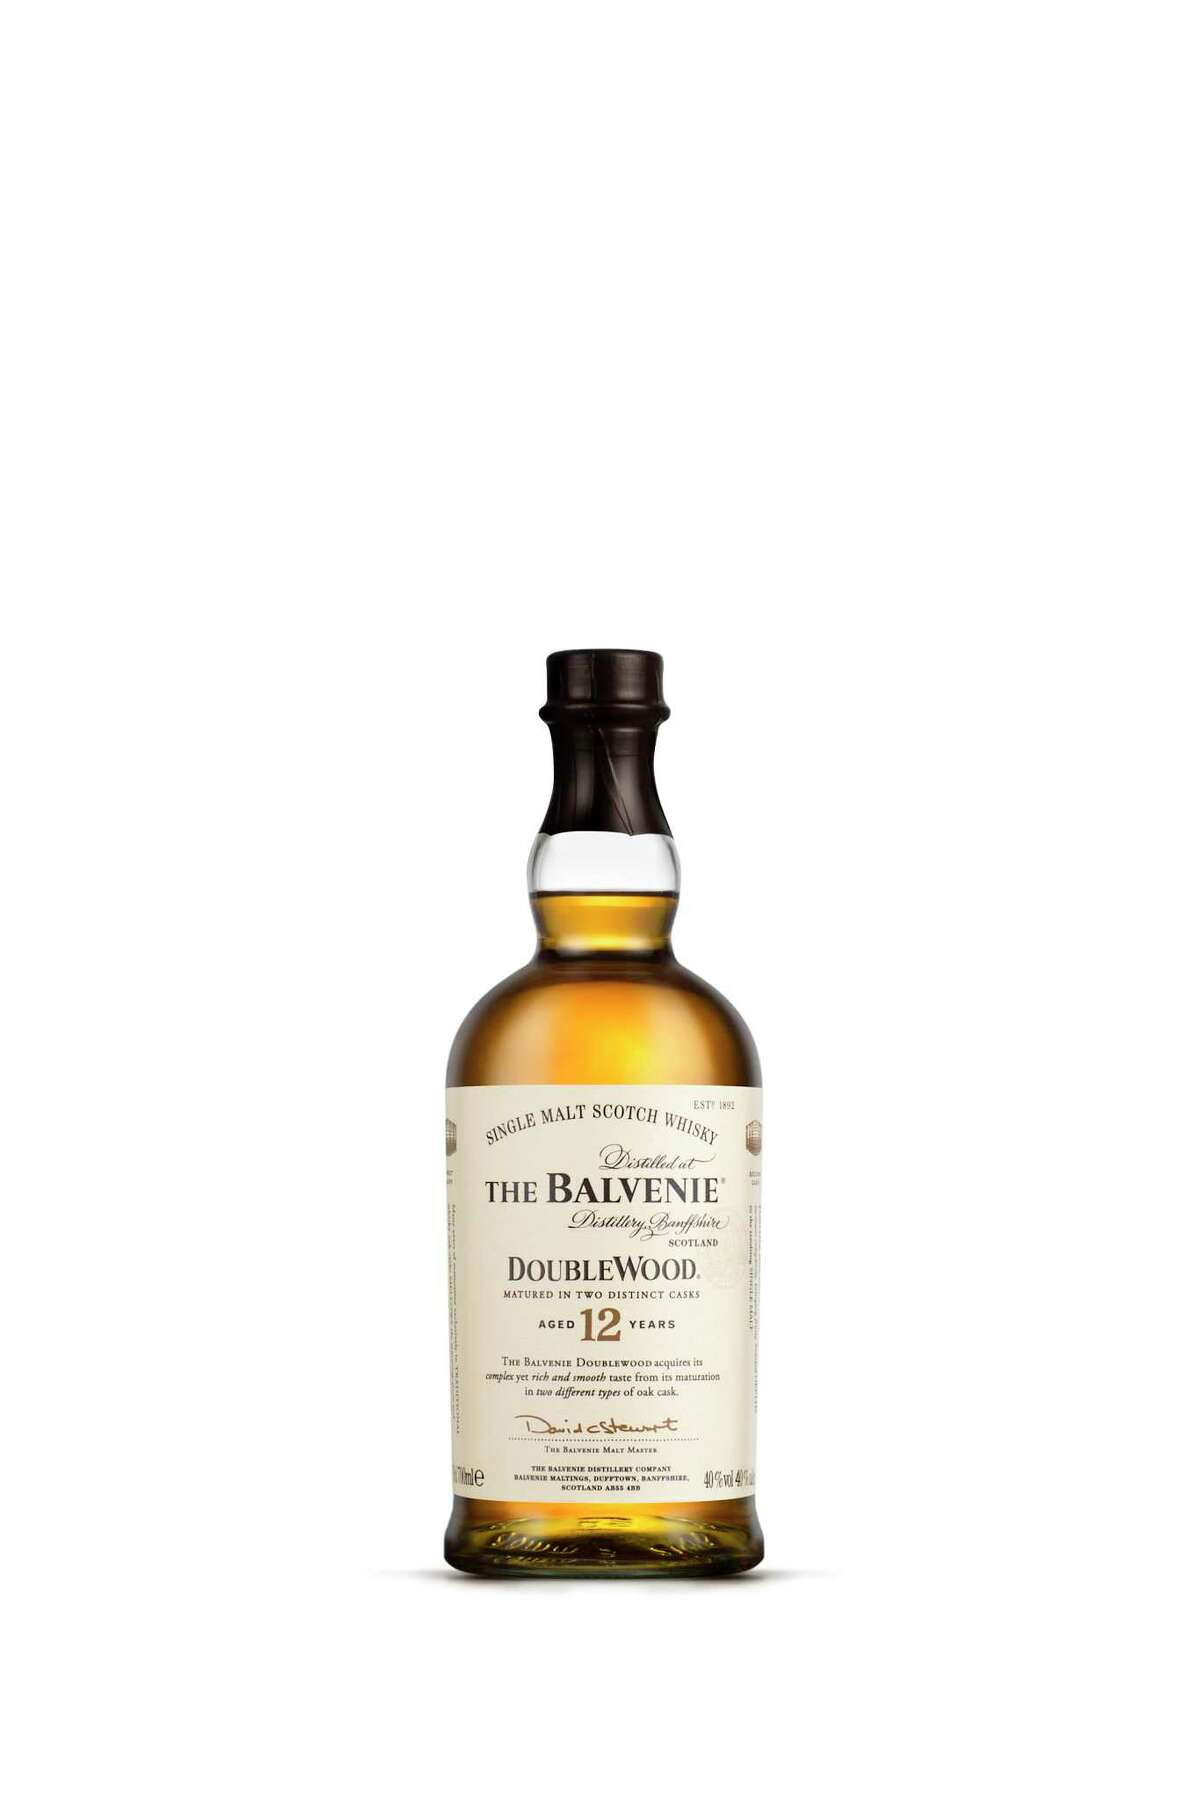 For your favorite single-malt man, The Balvenie Double Wood 12 Year Old makes a perfect gift. Matured in two wood types, this mellow Speyside scotch offers sherry sweetness, cinnamon spices and a long, warm finish; $59 at Total Wine & More.